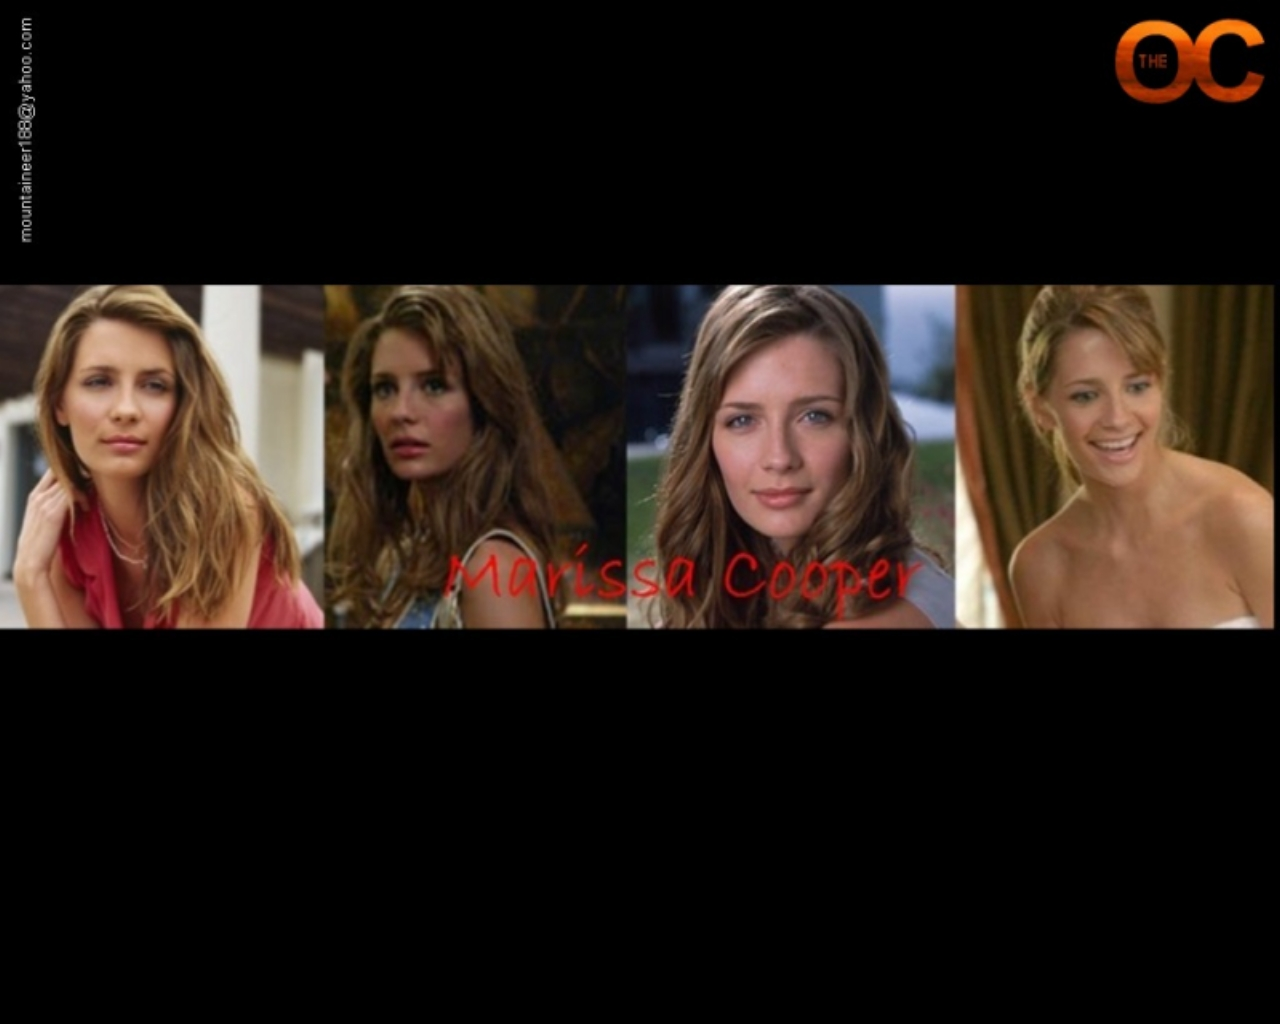 Wallpaper The Oc Wallpaper